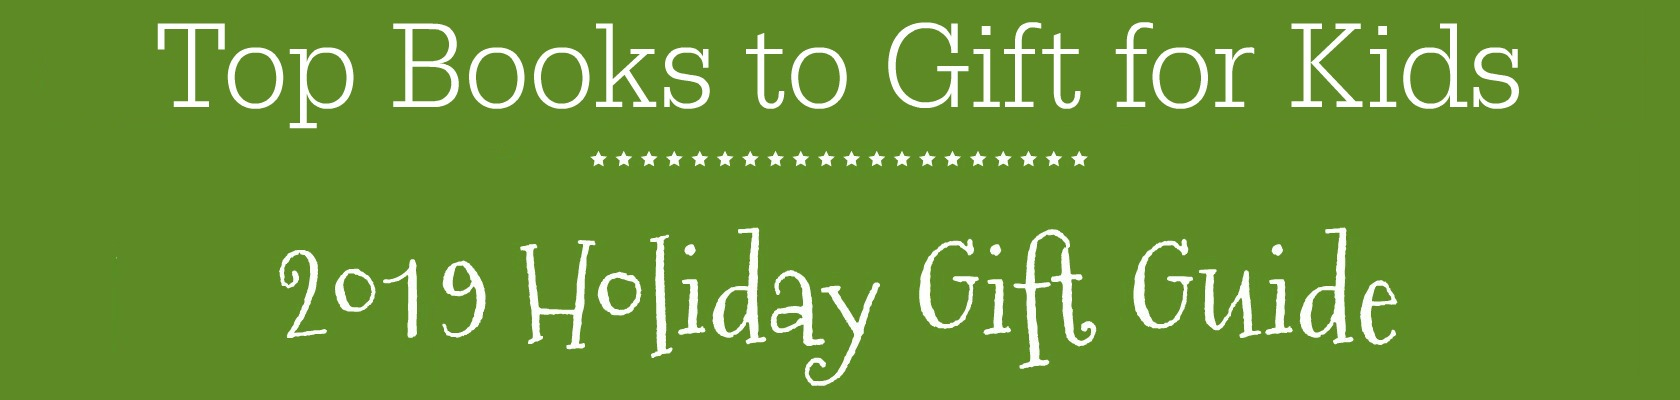 Books for Kids Holiday Gift Guide